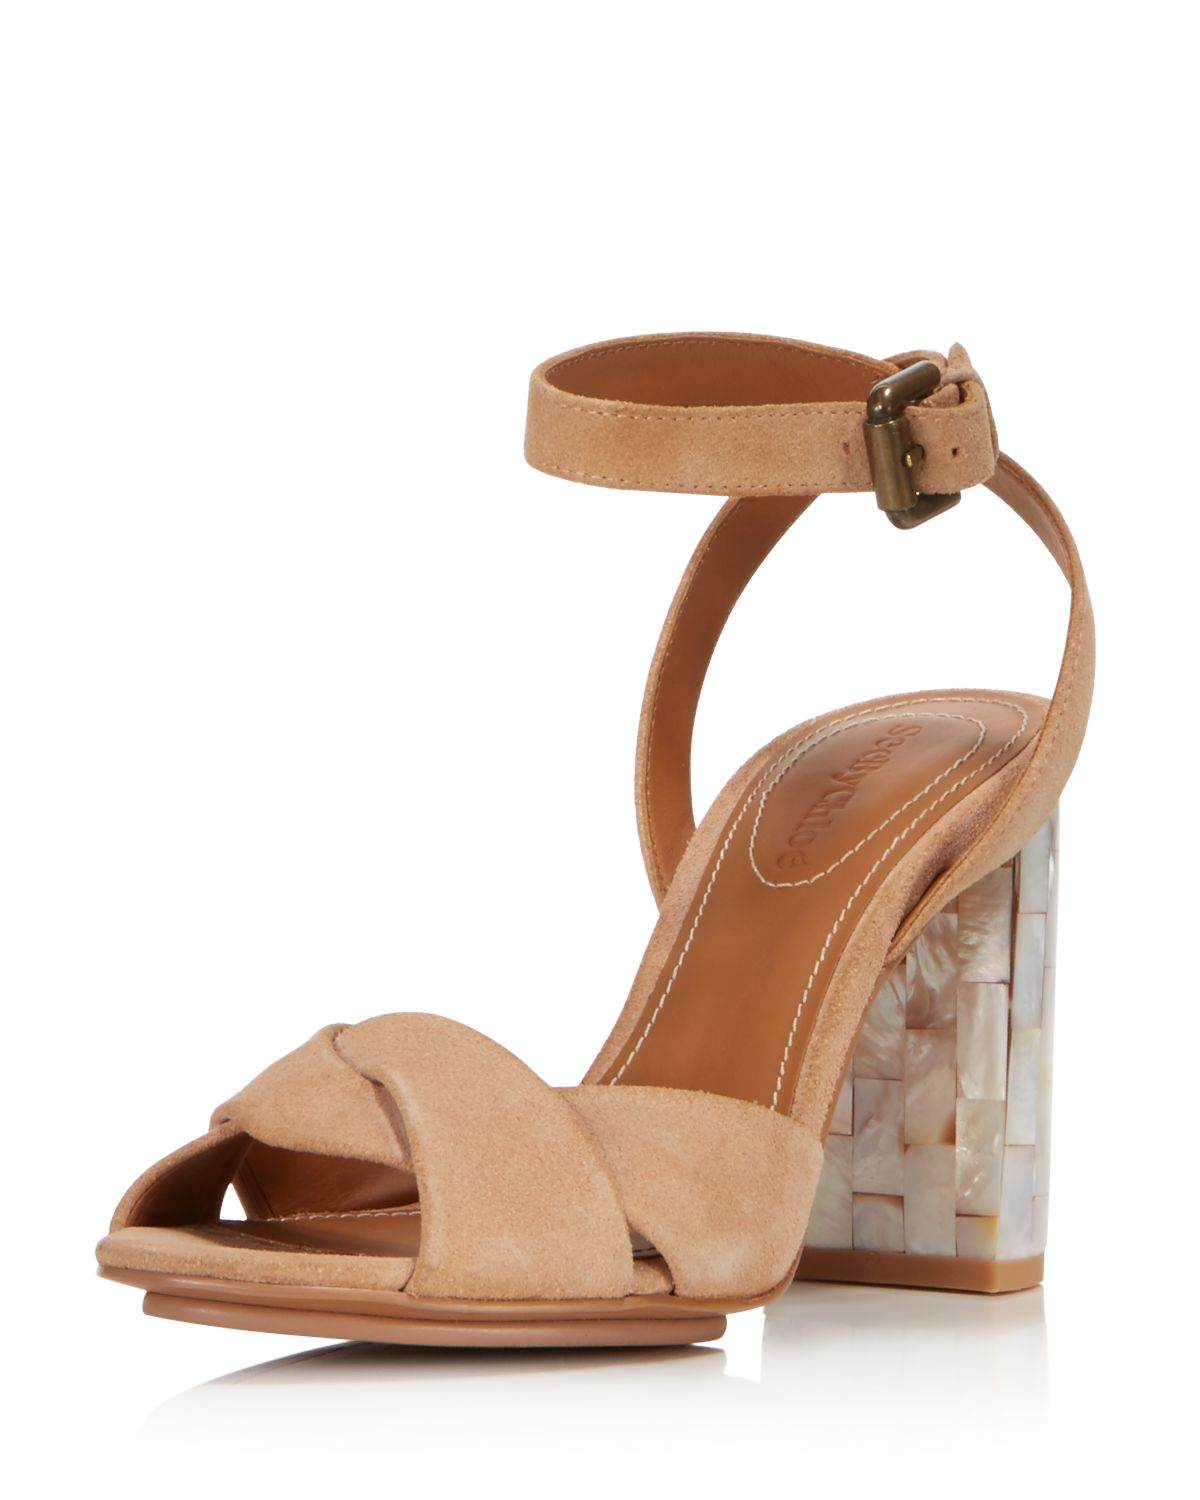 Chloé Women's Isida Suede & Mother-of-Pearl Block Heel Sandals